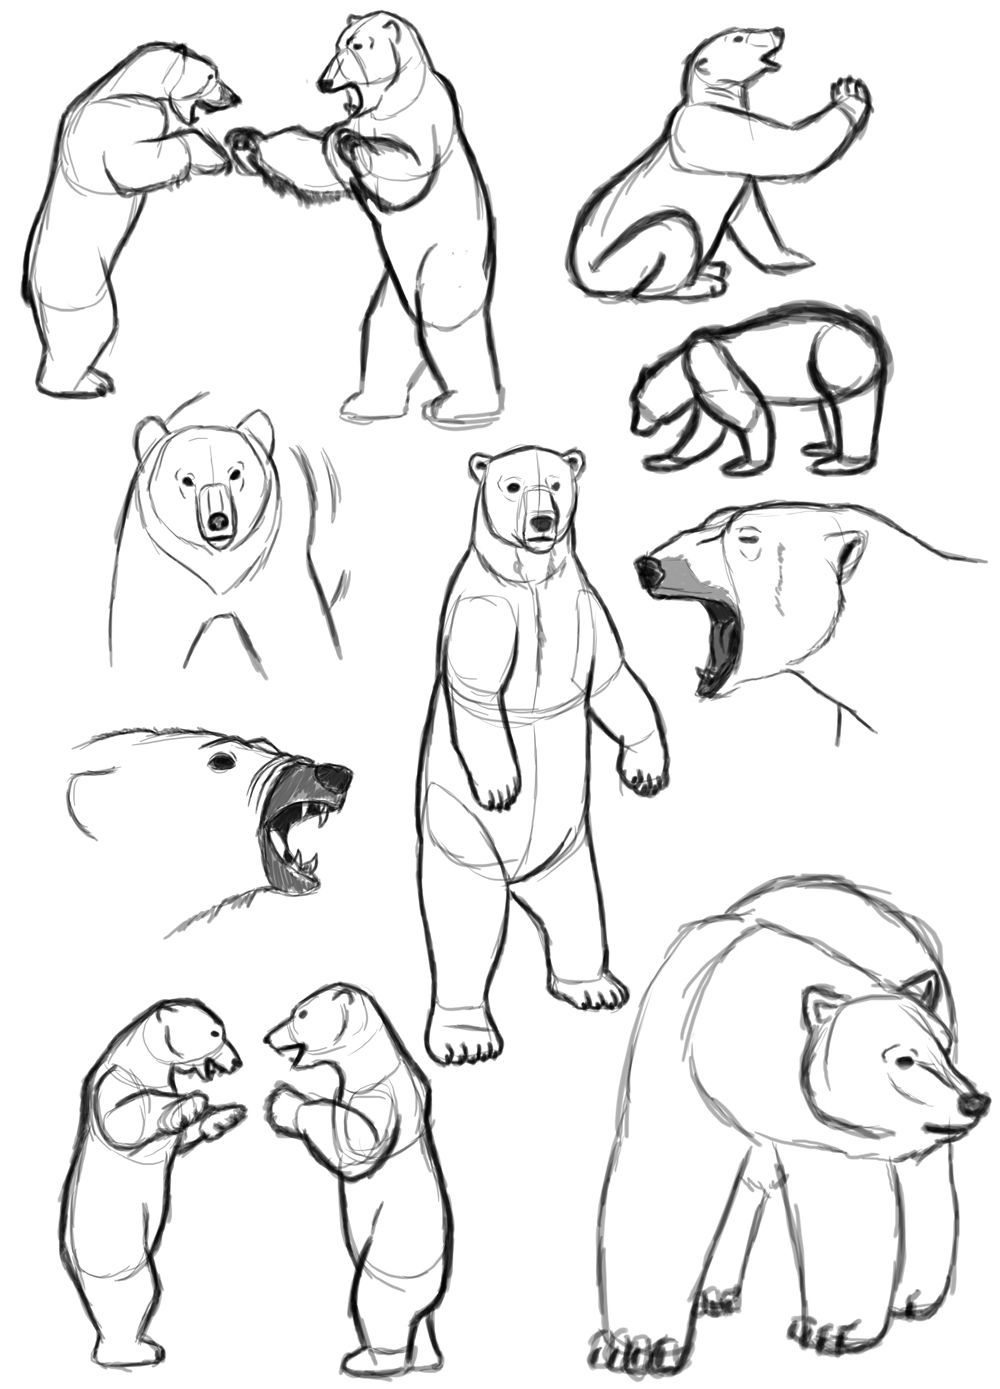 how to draw a grizzly bear face the domain name popistacom is for sale in 2019 art a how bear grizzly to draw face